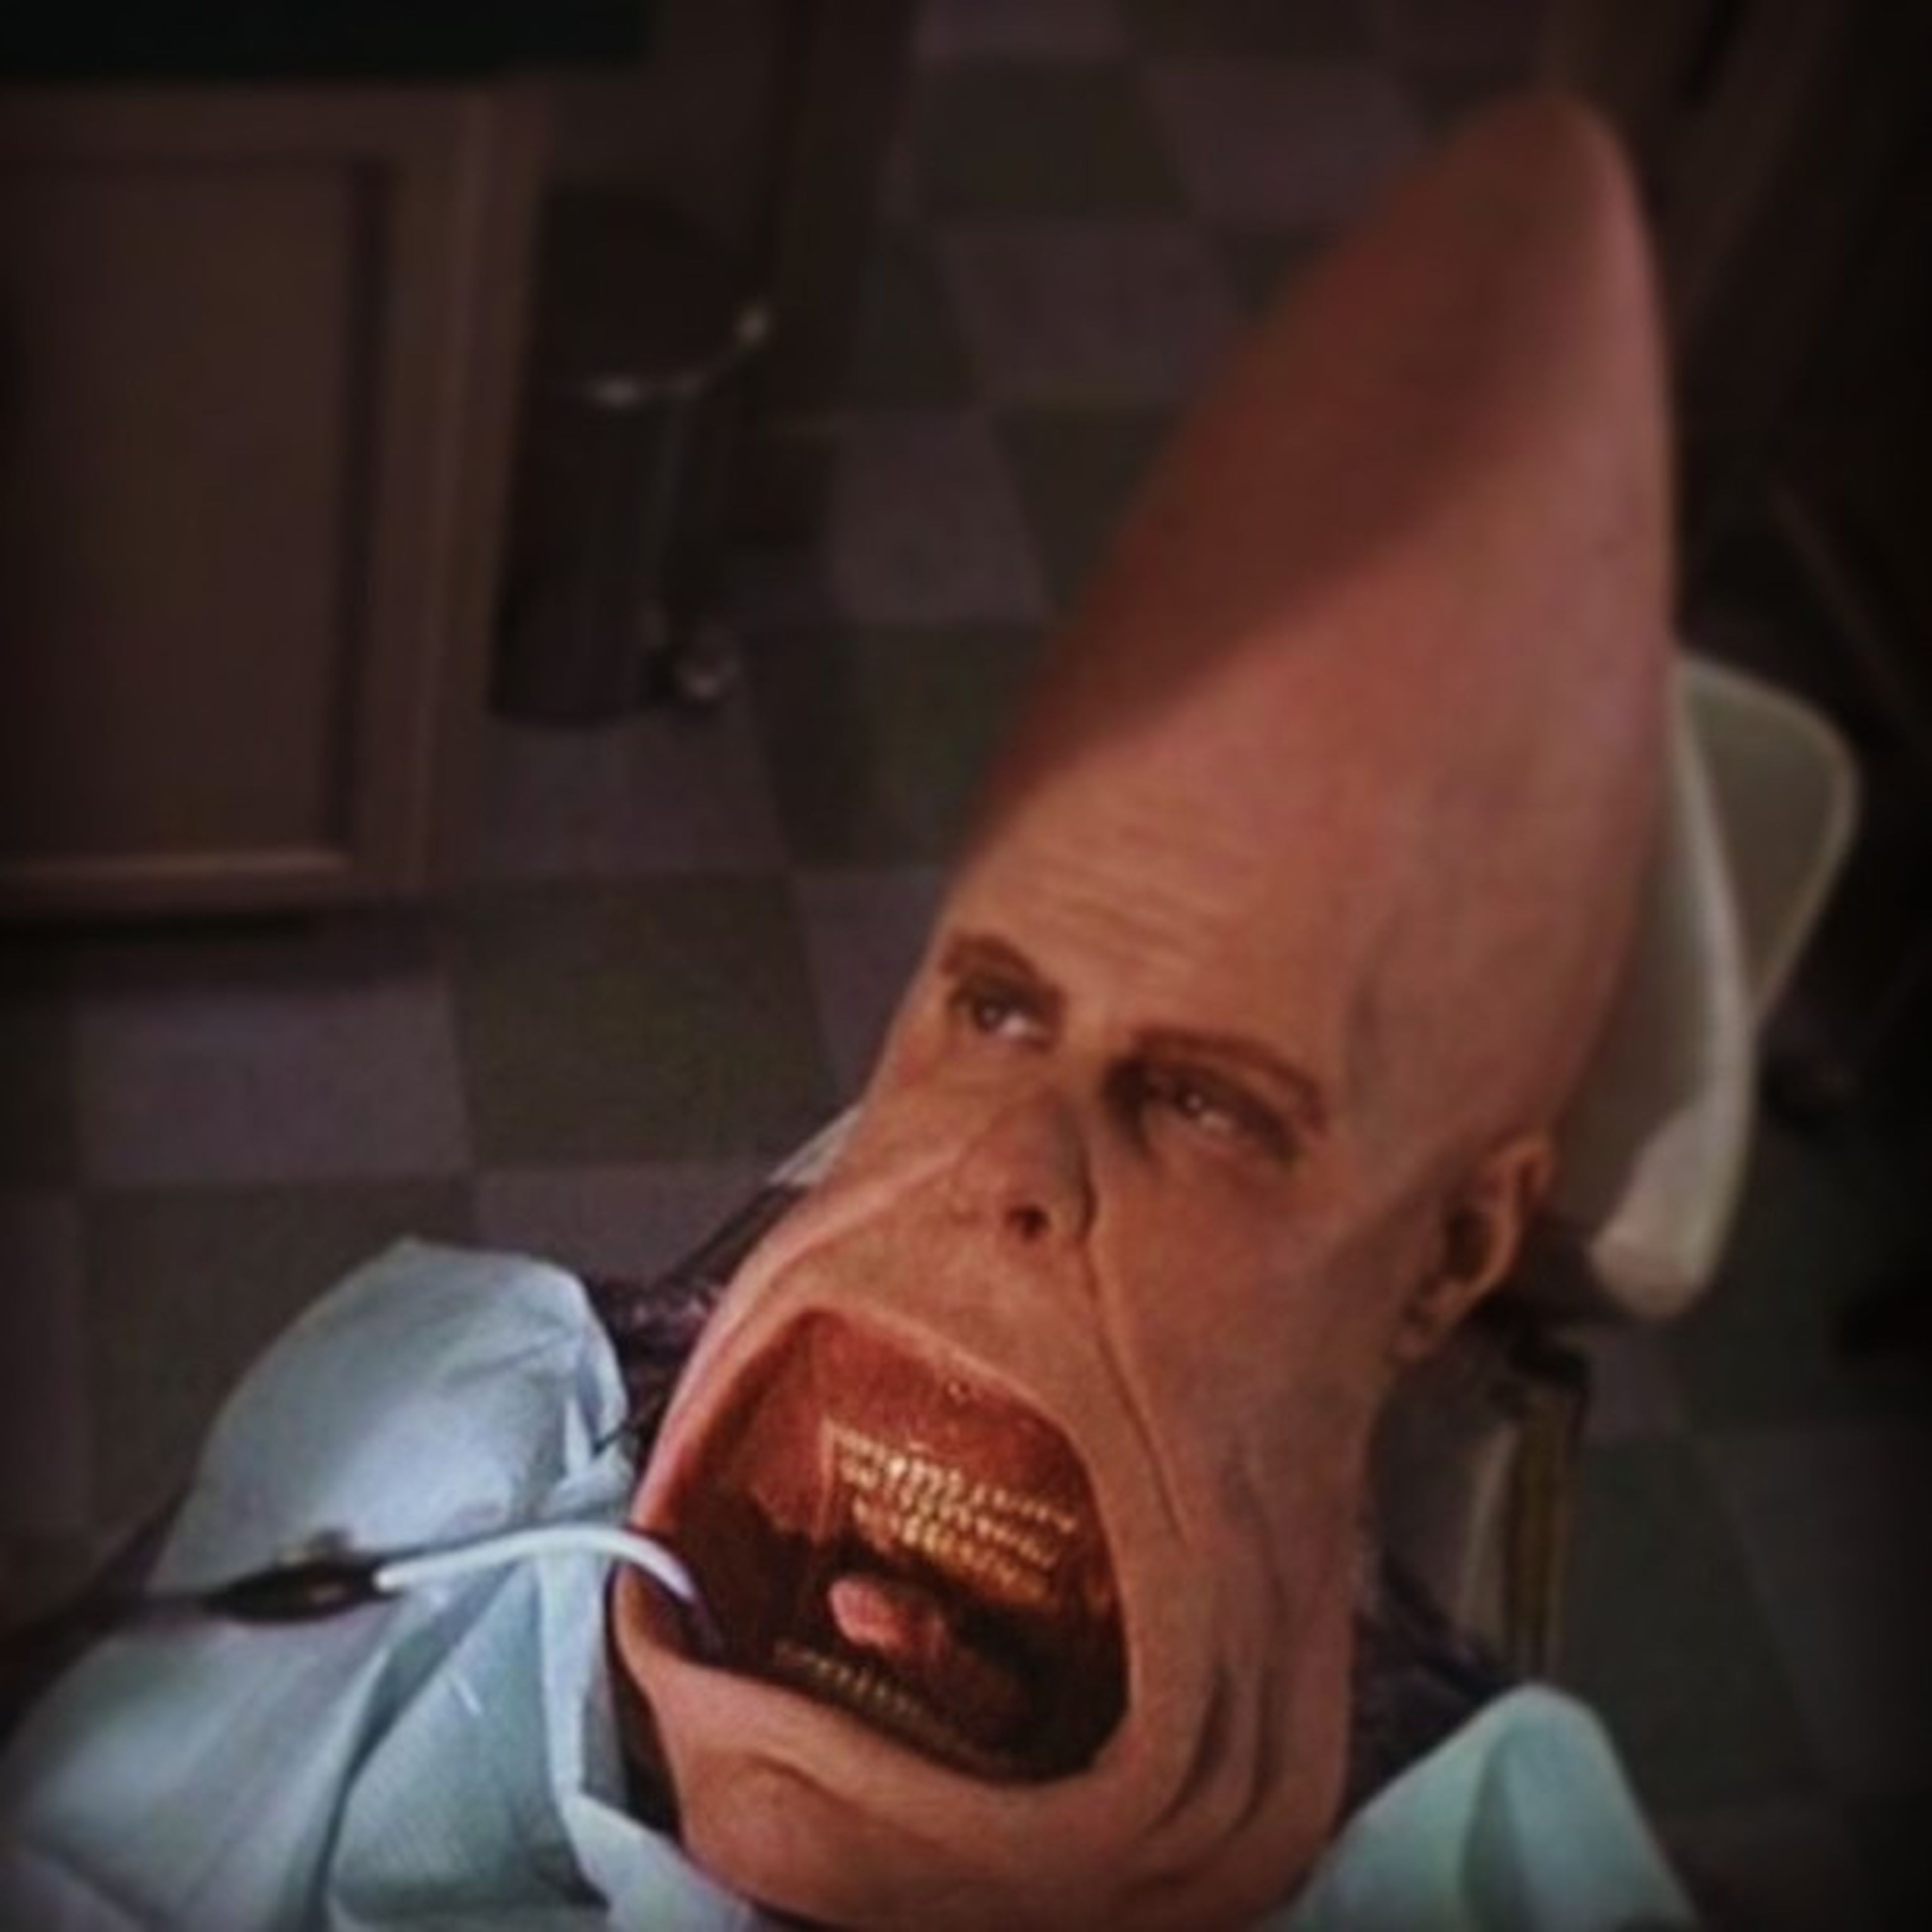 Scary Coneheads Danakroyd